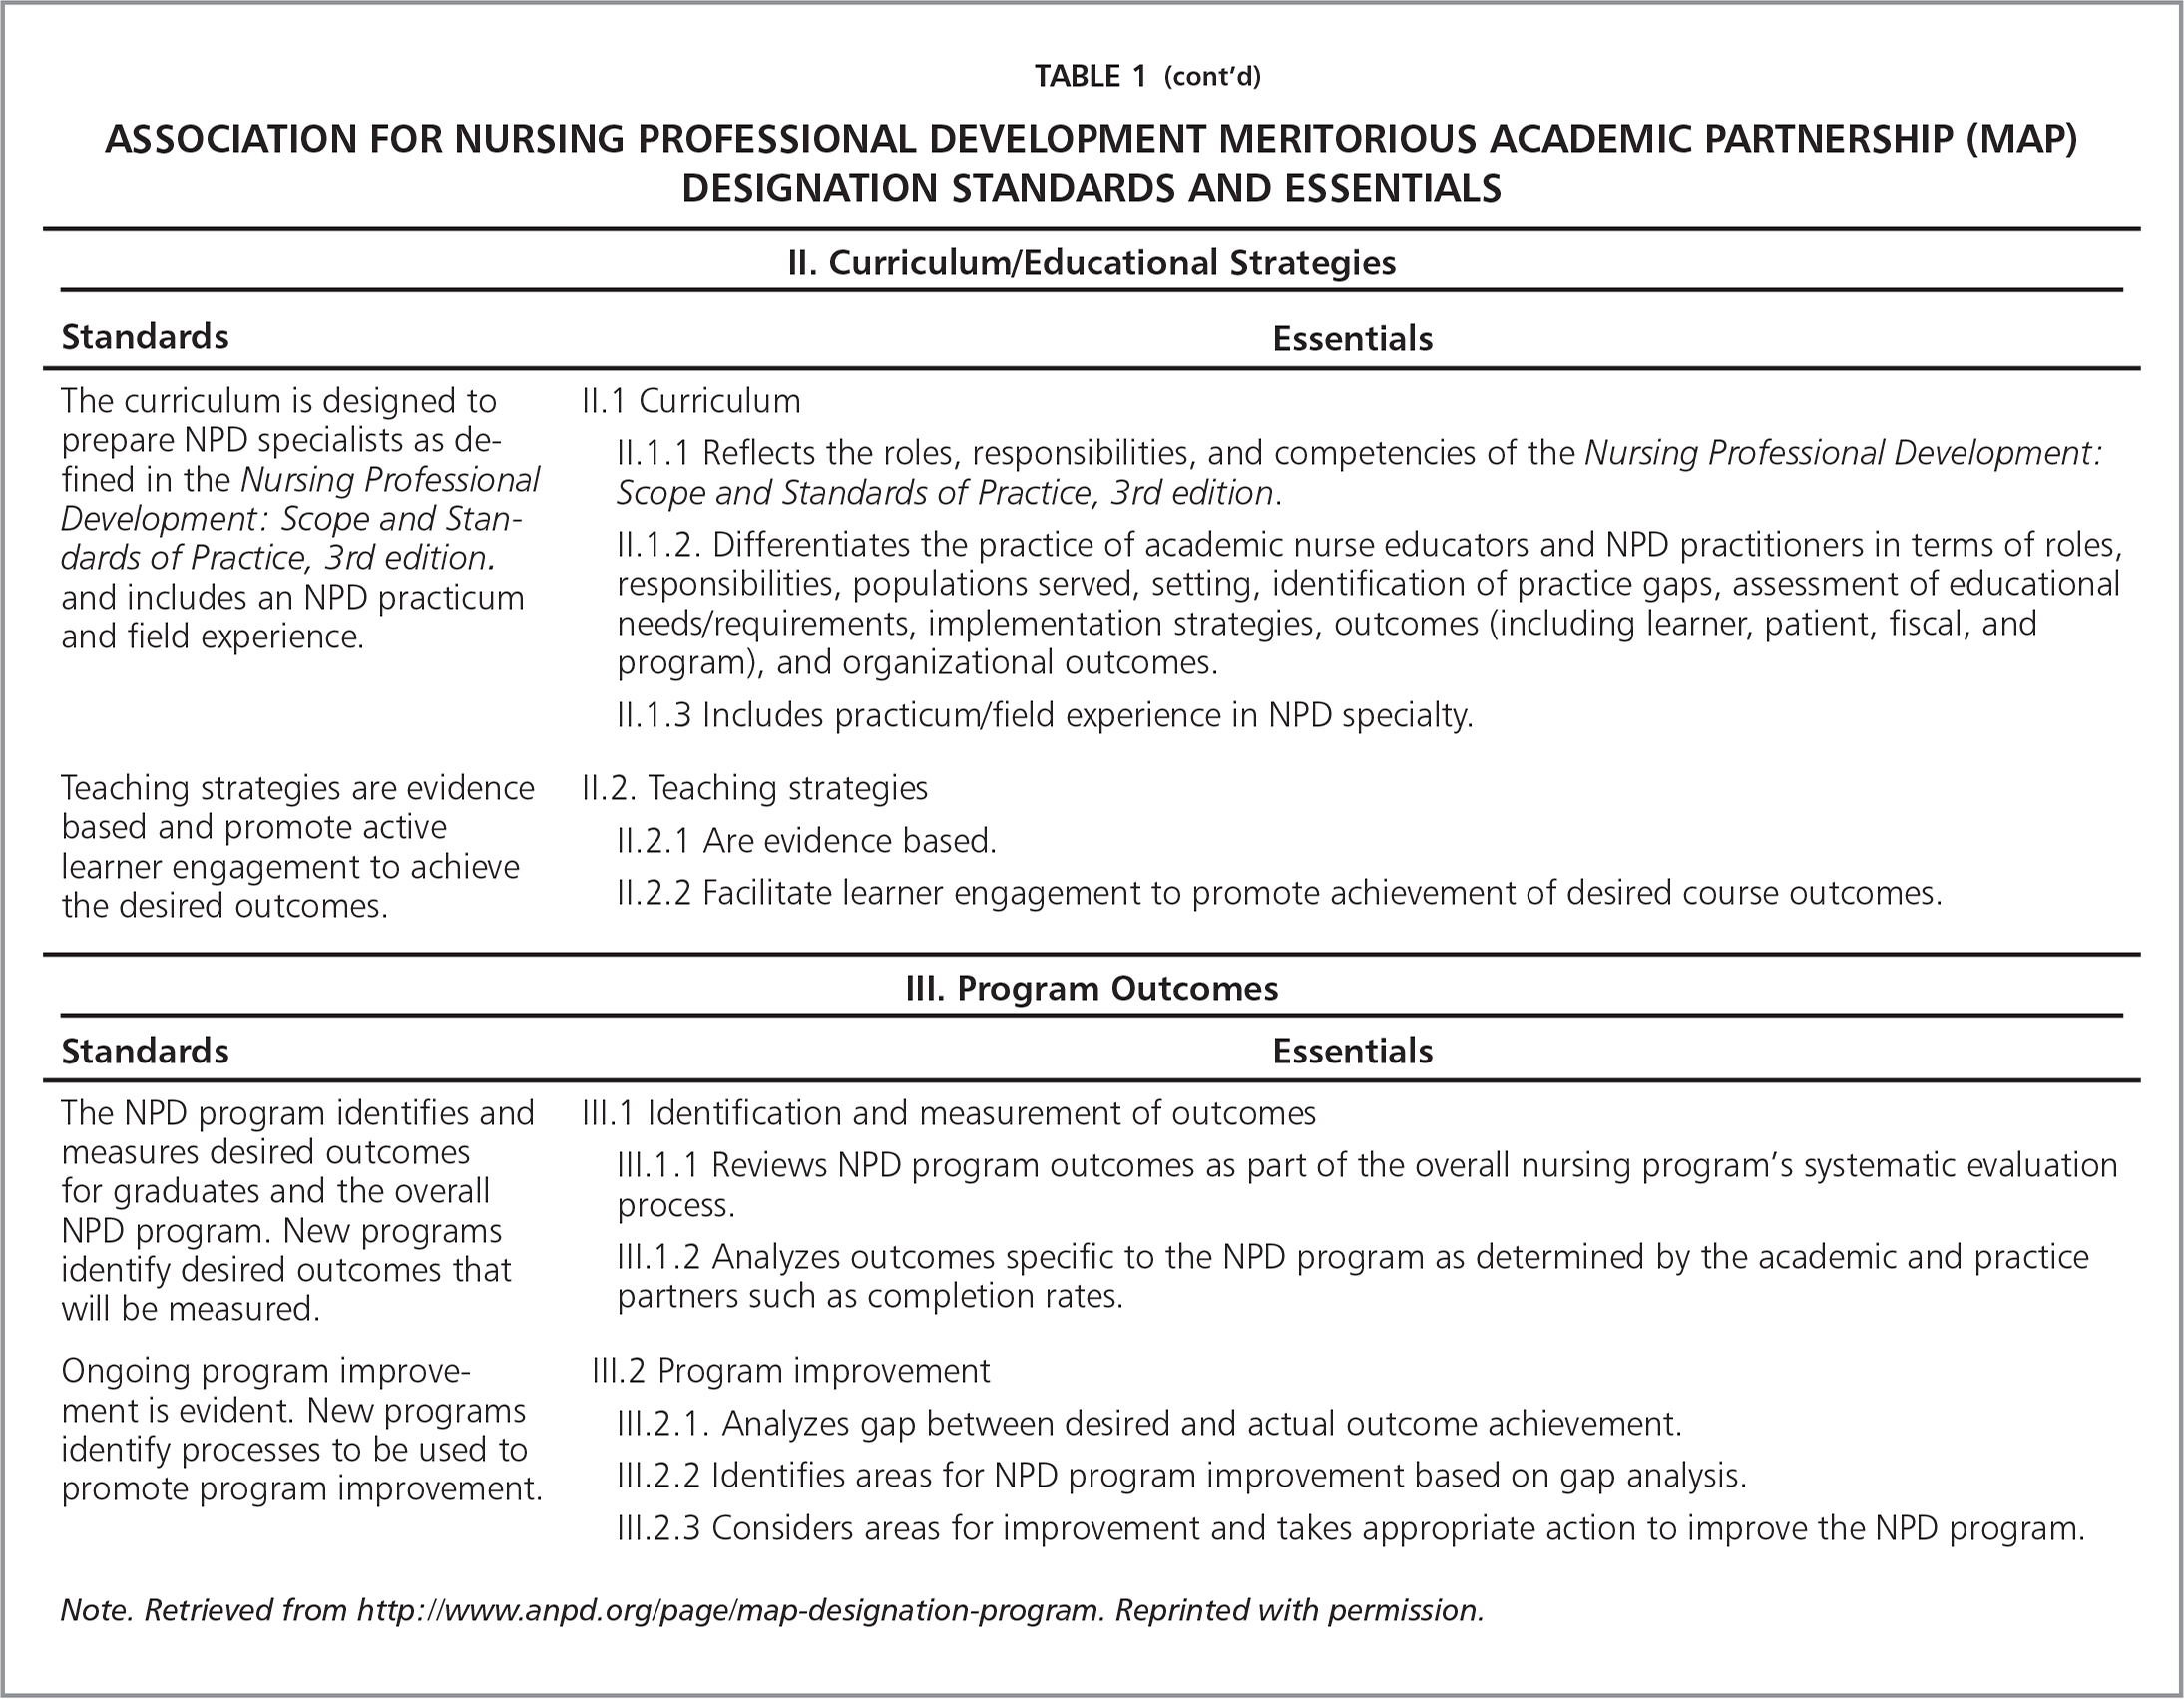 Association for Nursing Professional Development Meritorious Academic Partnership (MAP) Designation Standards and Essentials